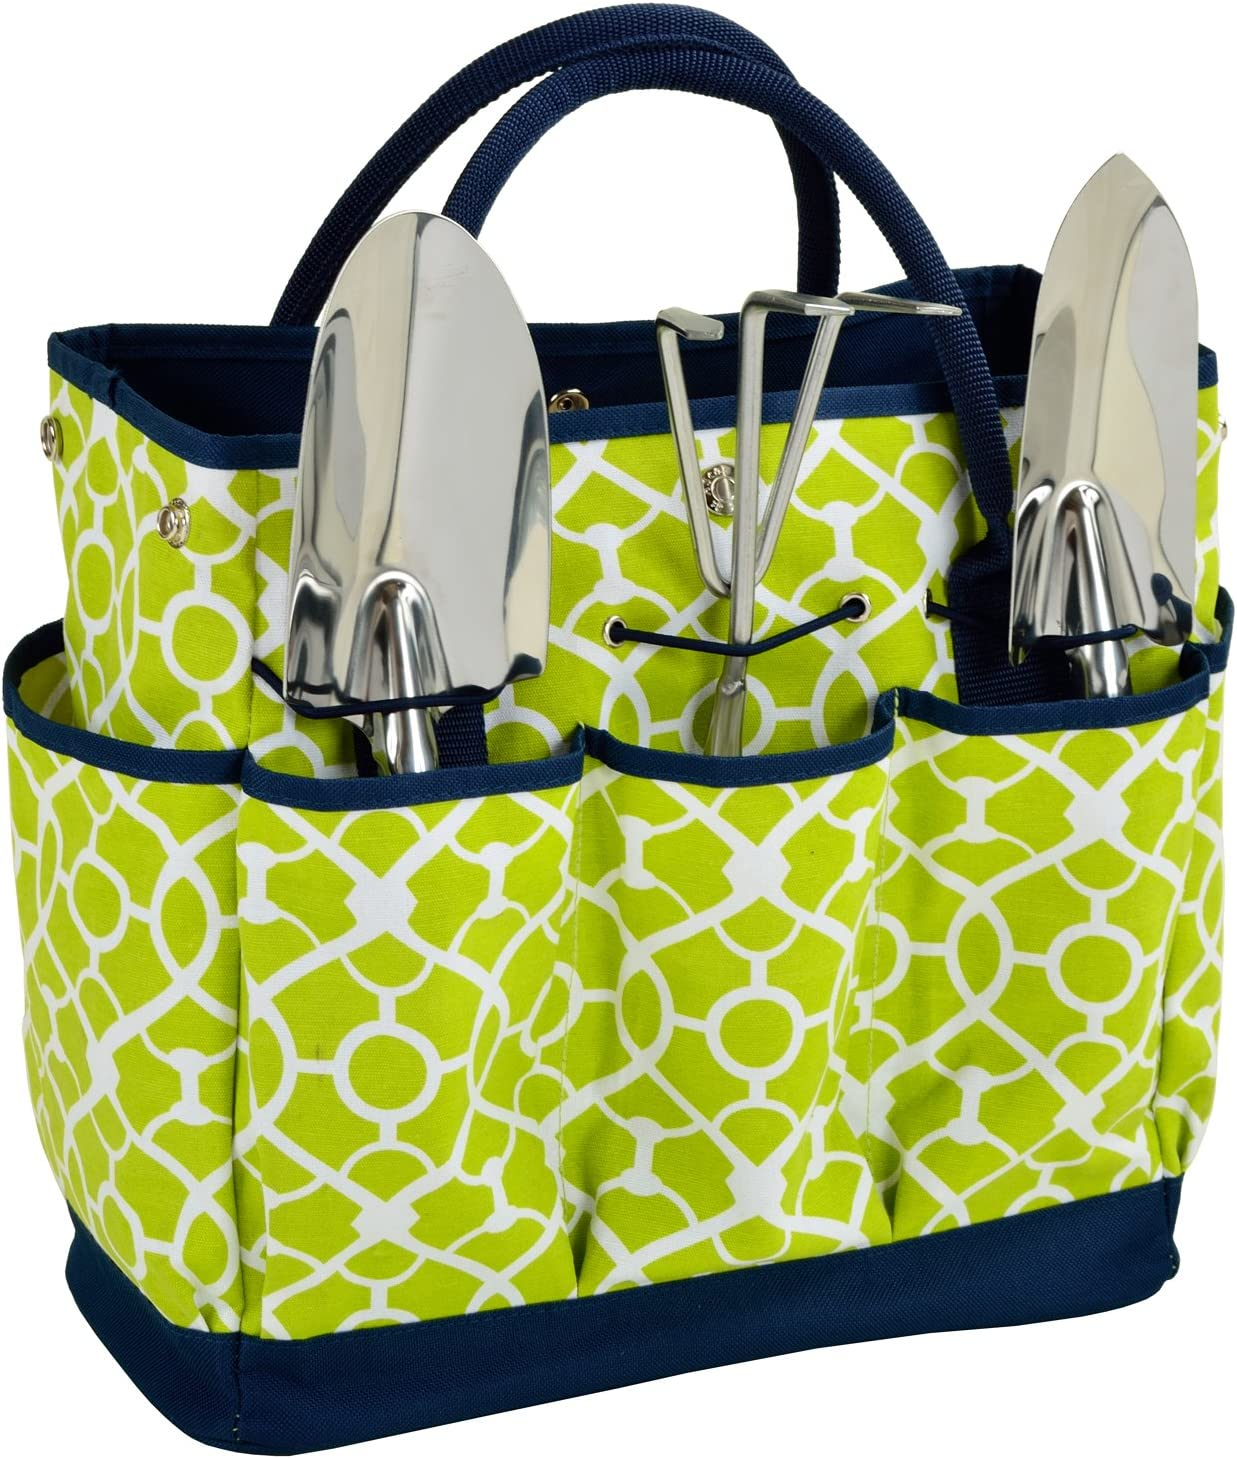 Picnic at Ascot Gardening Tote with 3 Stainless Steel Tools- Designed & Assembled in the USA